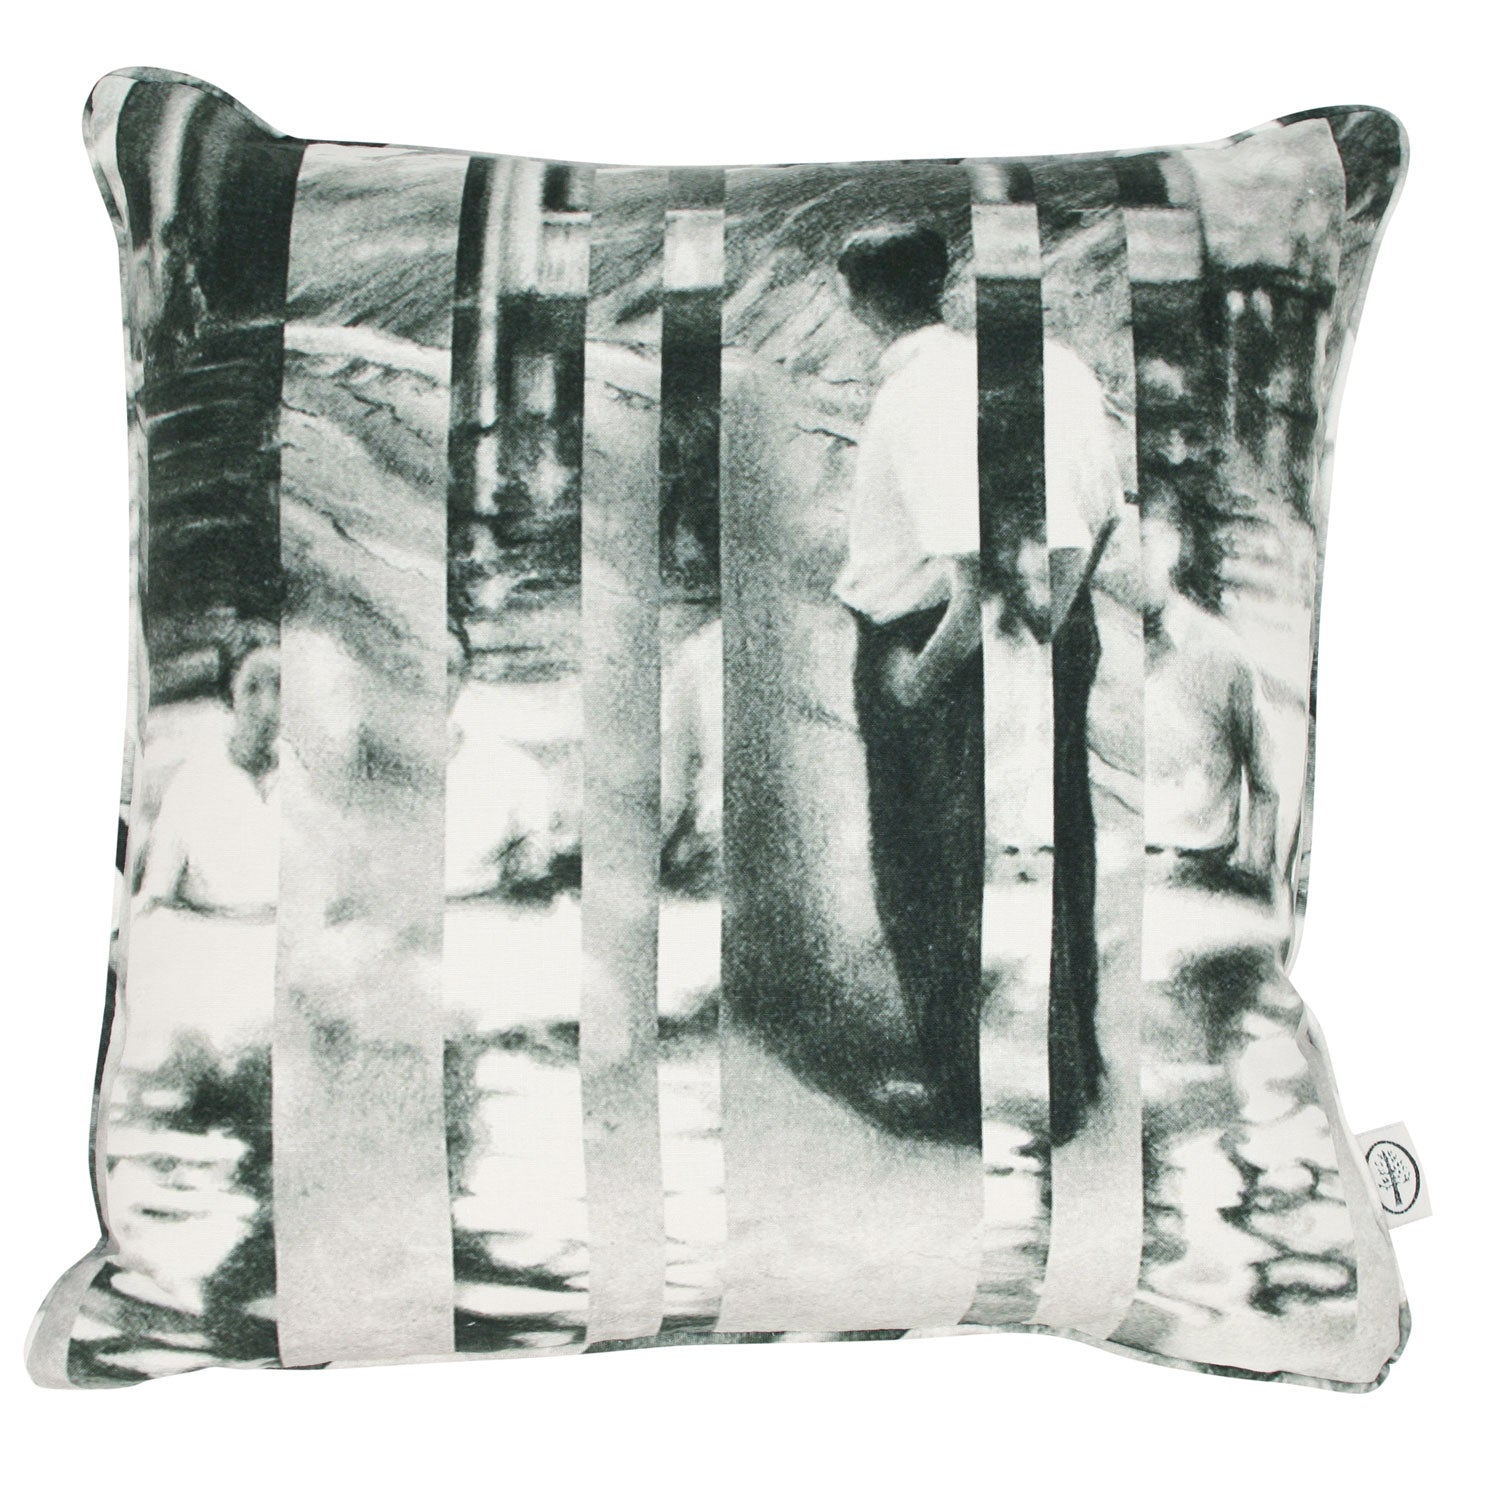 Between Certainty and Oblivion Linen Cushion by Joel Weaver for The Monkey Puzzle Tree